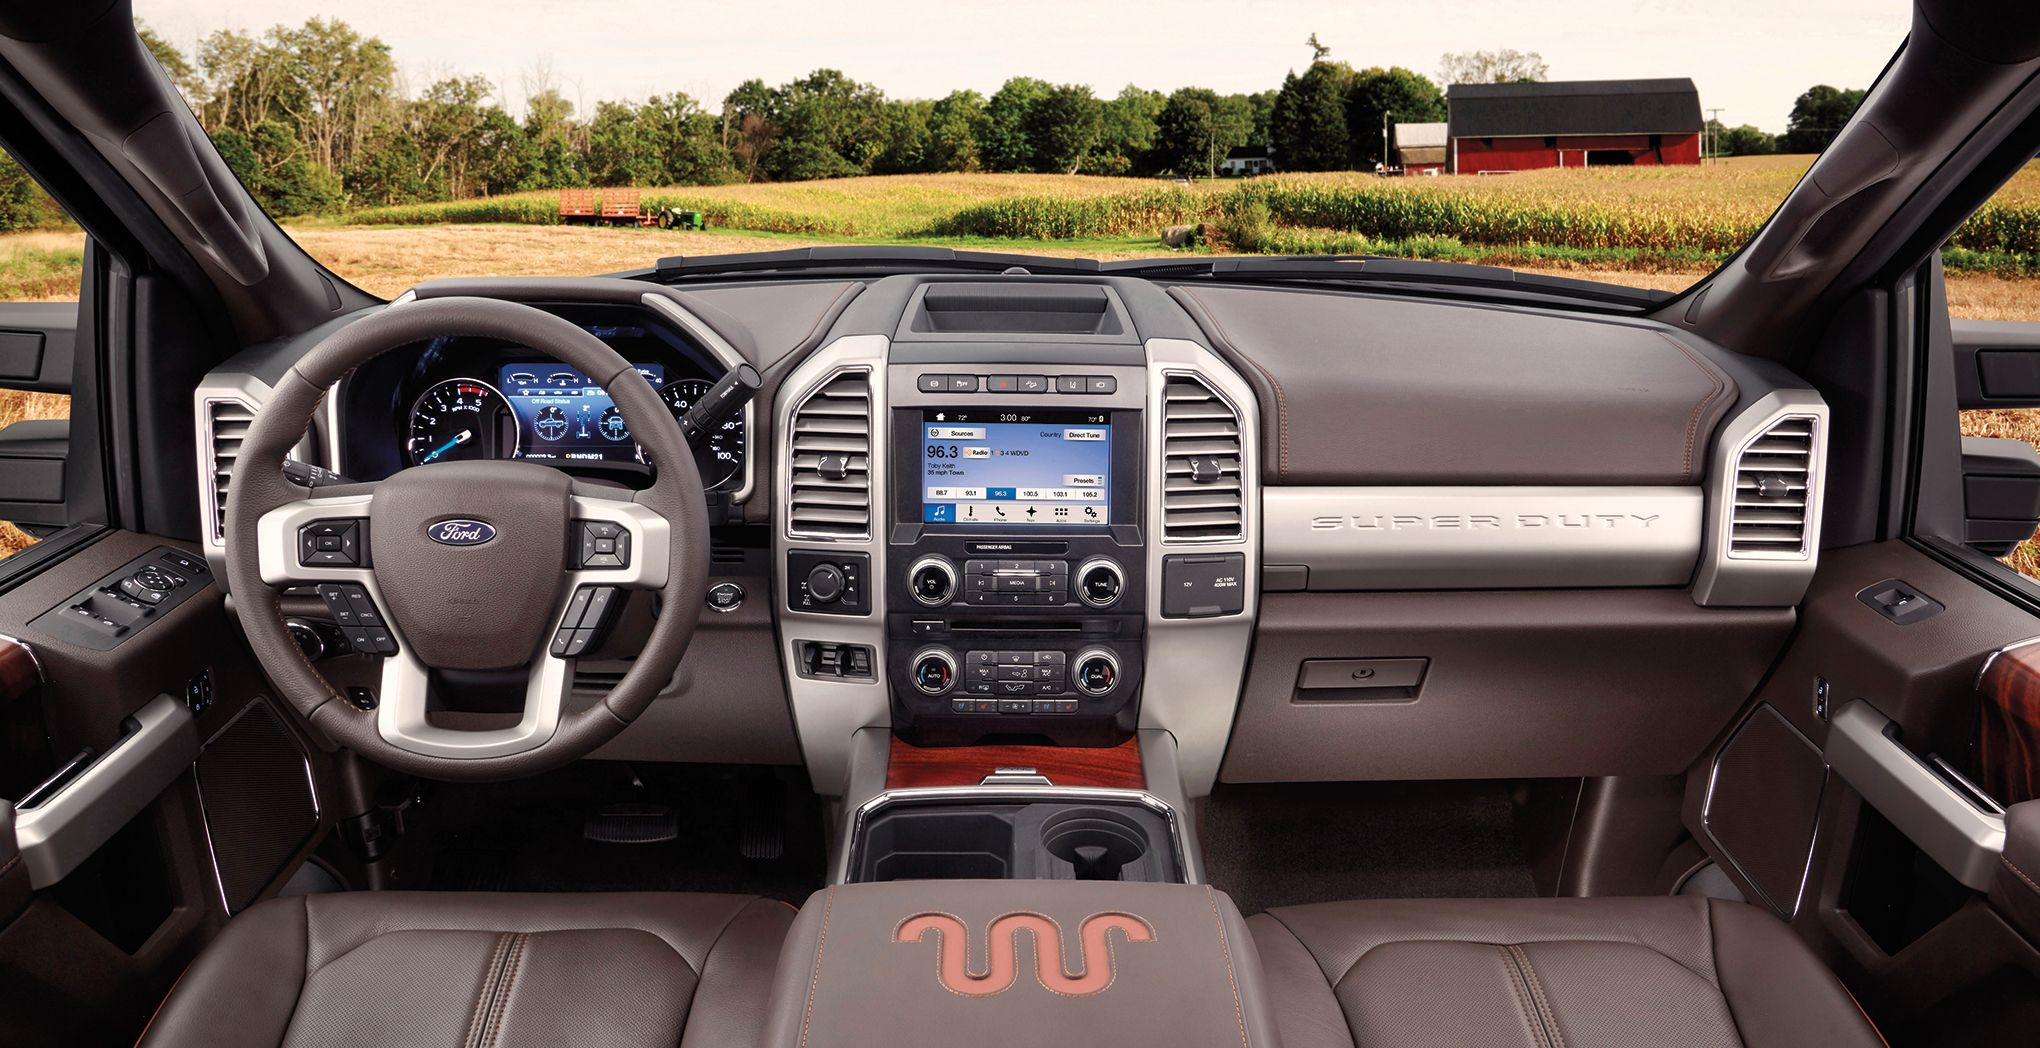 Ford's 2017 Super Duty Features the Quad-Barreled Cupholder We've Been Waiting For - Industry Tap